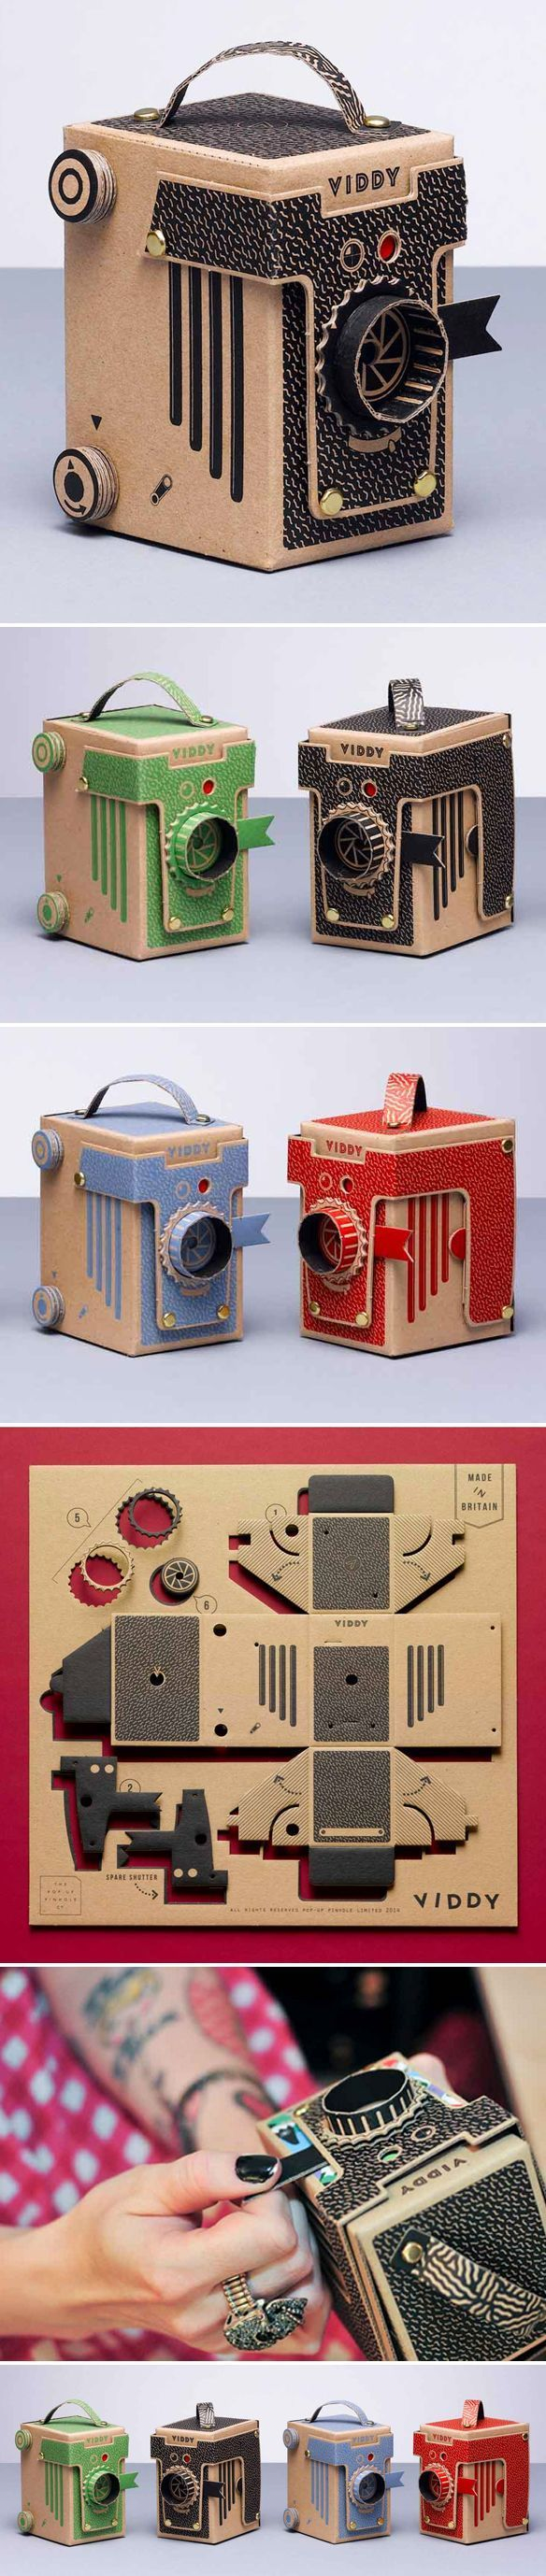 screenprinted, DIY pinhole camera! VIDDY (giveaway on the site today!)